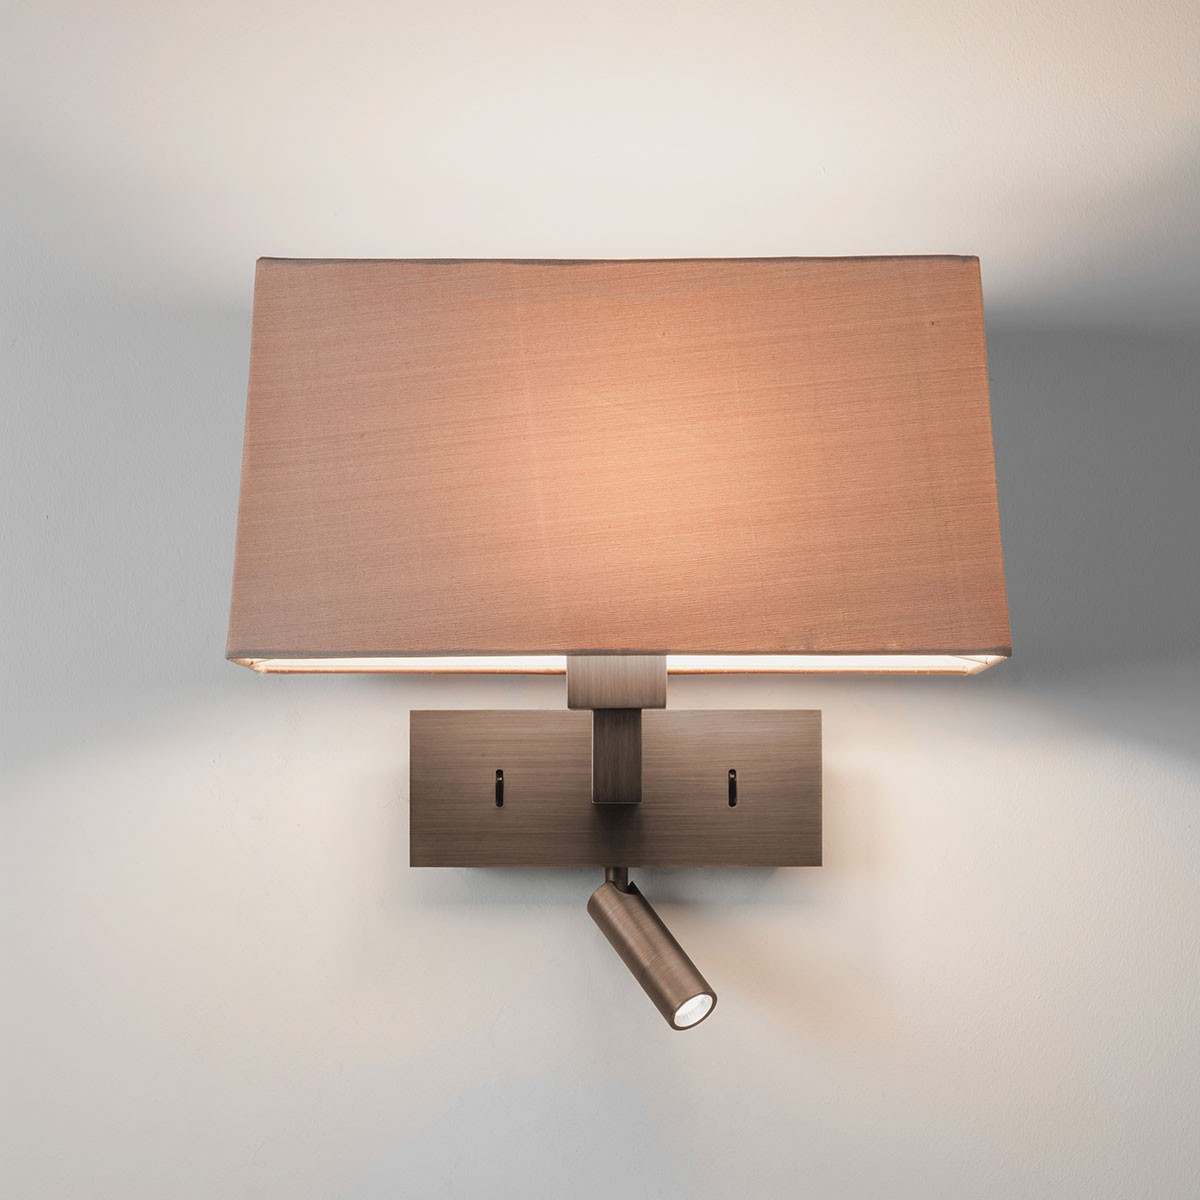 Twin Reading Wall Lights : Astro Park Lane Reader Bronze Wall Light with LED Reading Light at UK Electrical Supplies.